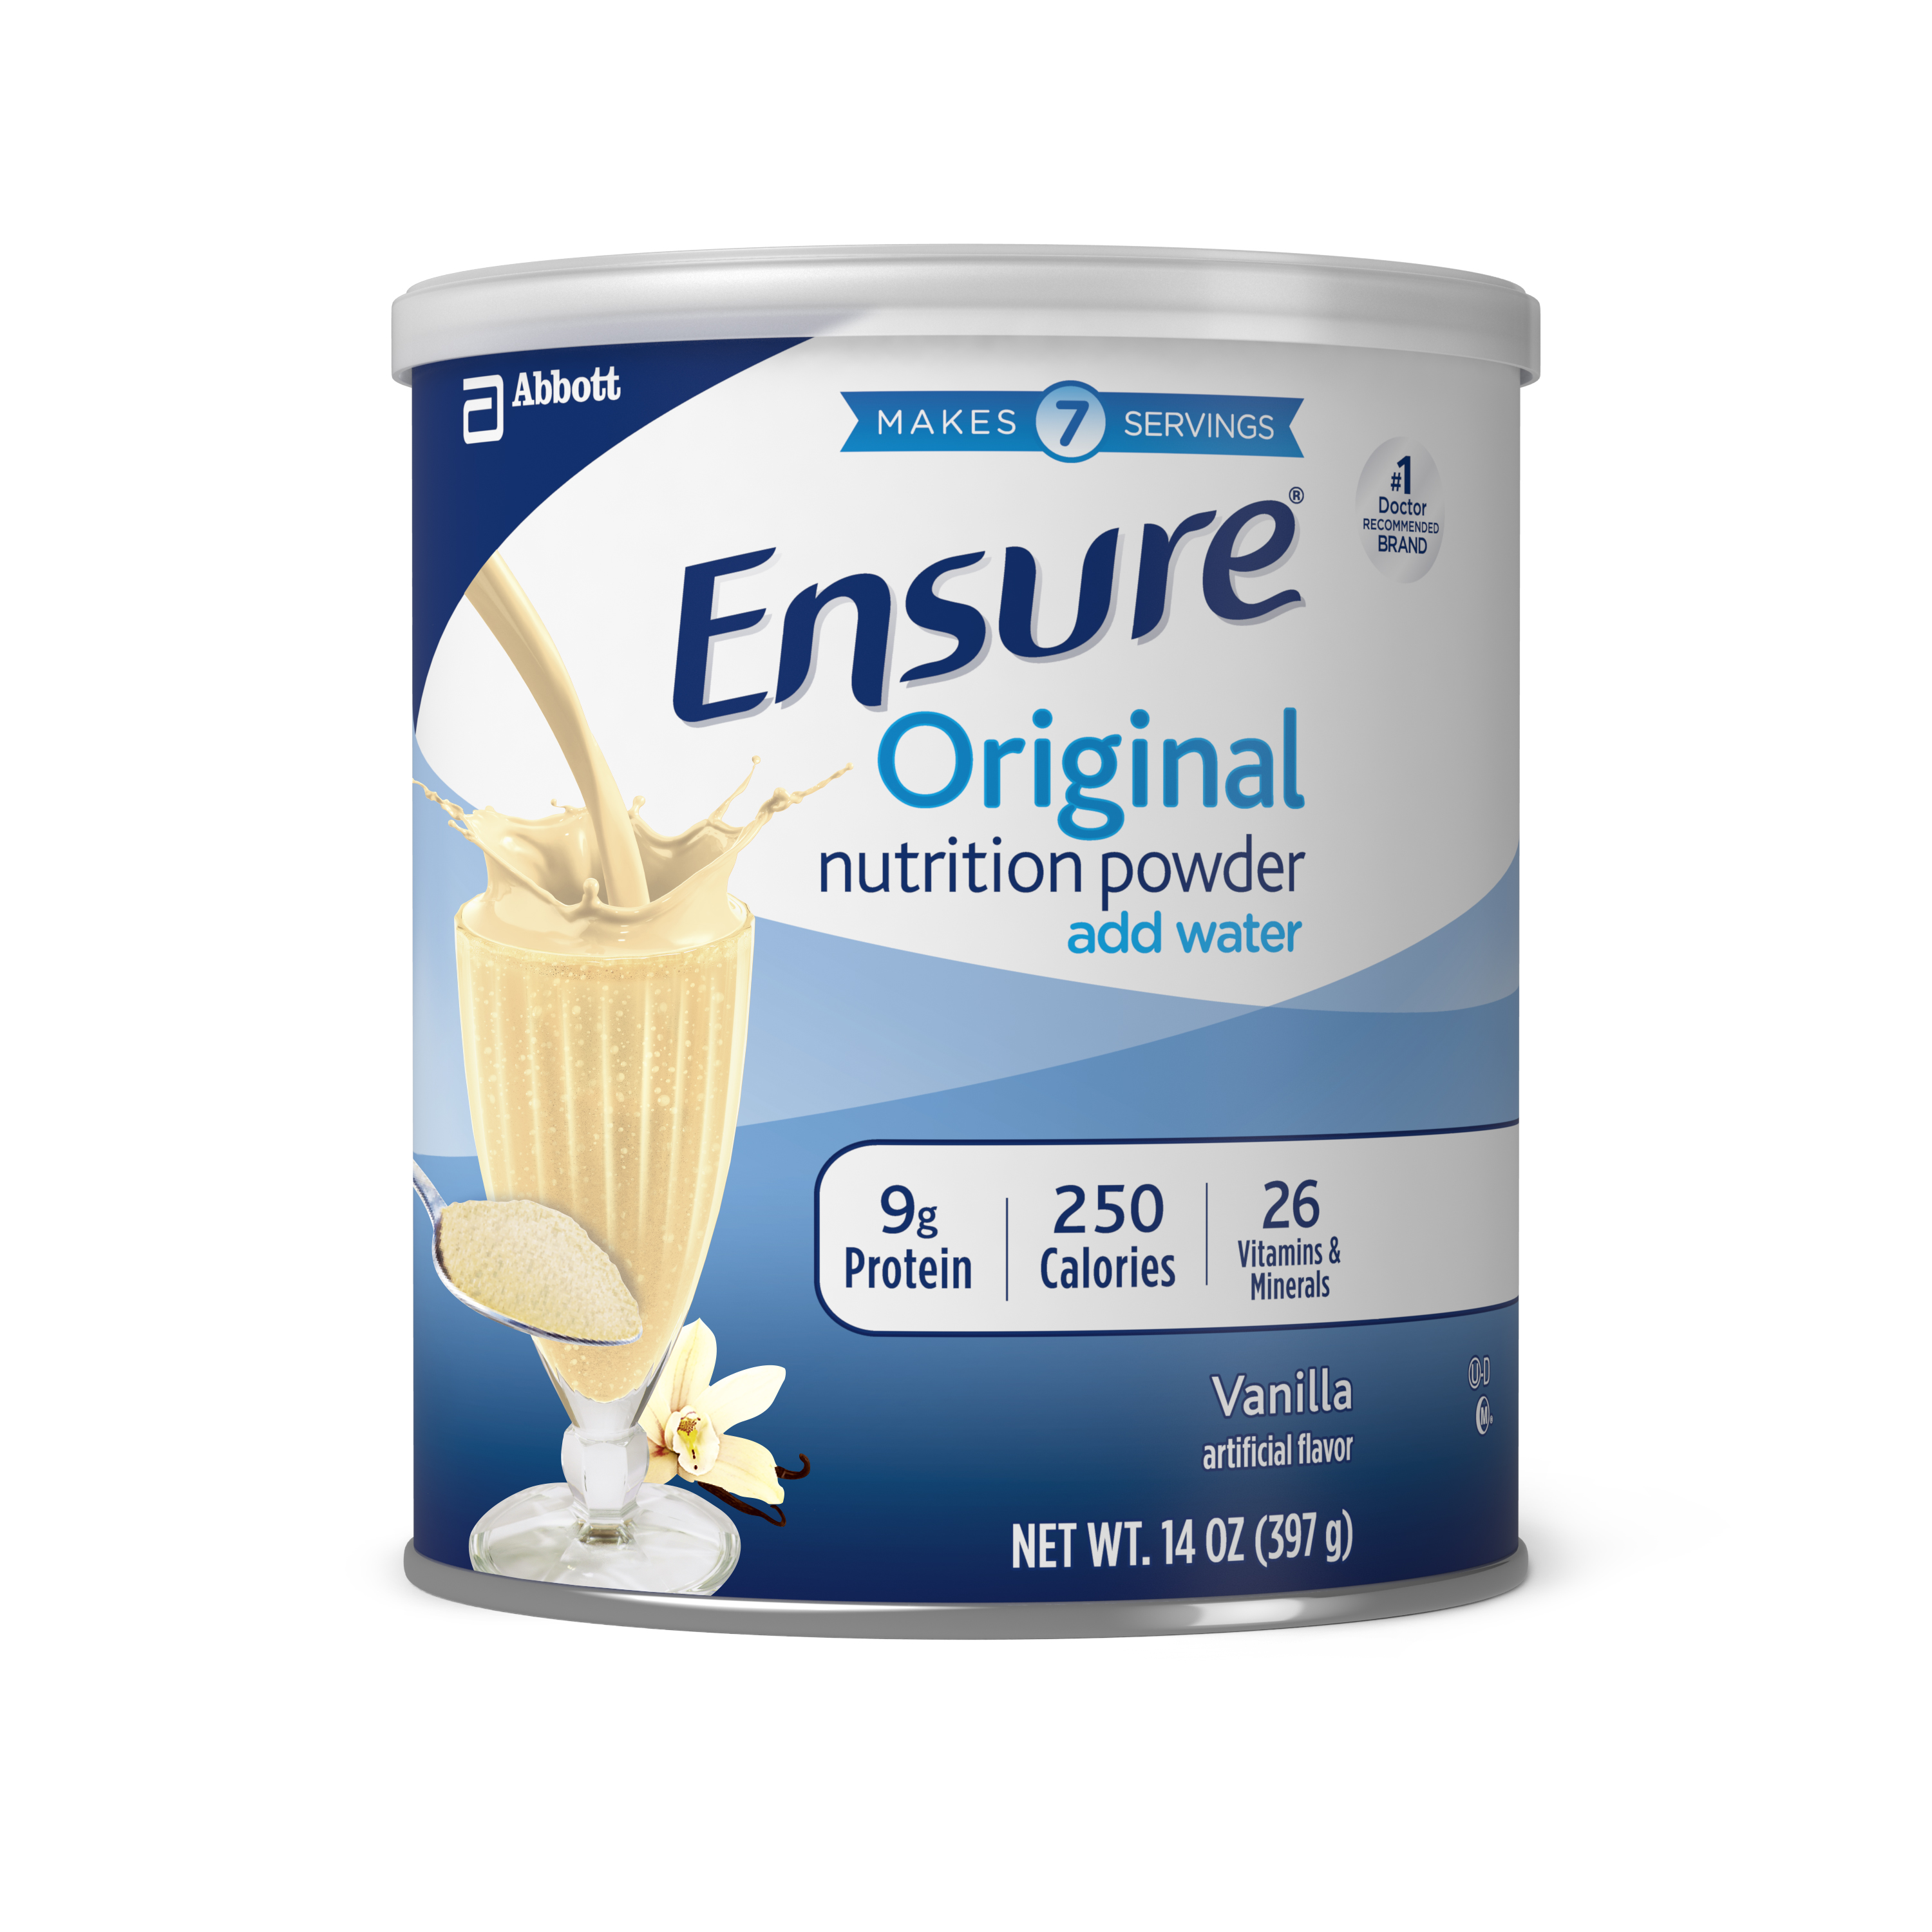 Ensure Original Nutrition Powder with 9 grams of protein, Meal Replacement, Vanilla, 14 oz by Abbott Laboratories,ABBN7